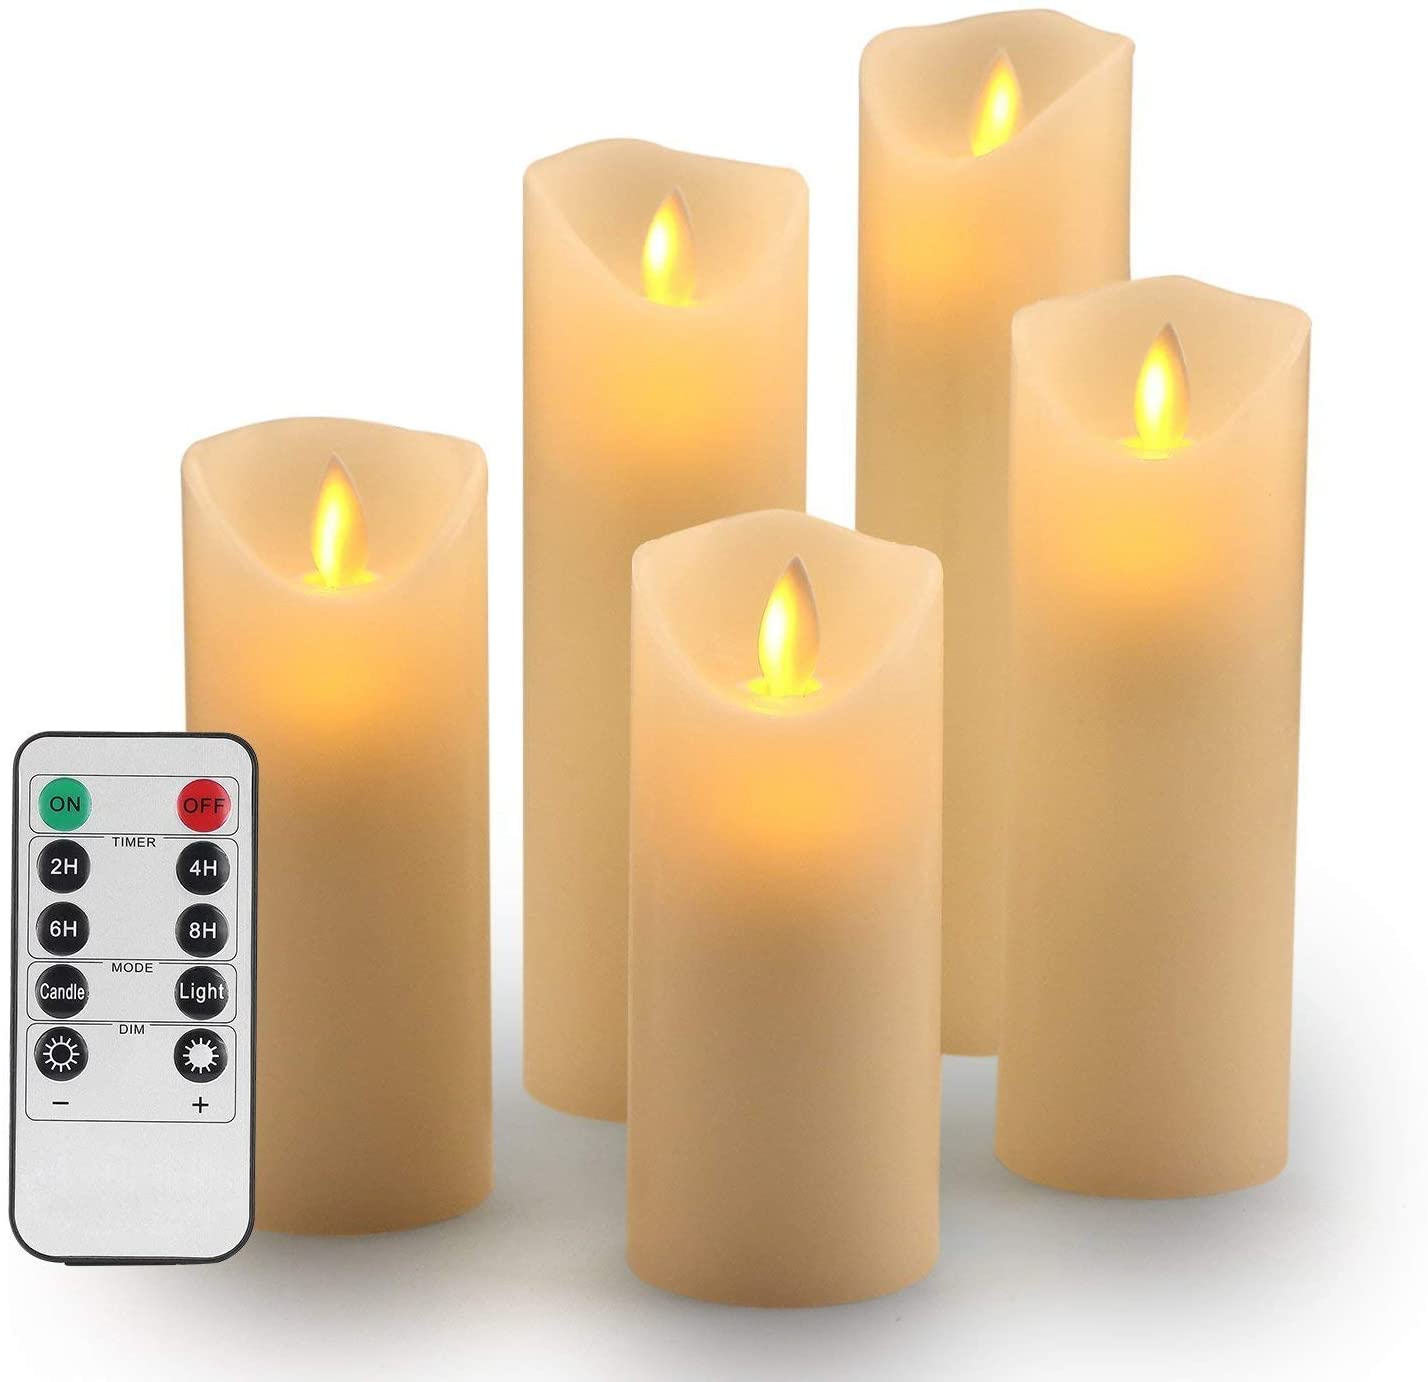 "Flameless Candles - Flameless Flickering Decorative Candles-Flameless Candles set: 5.5"", 6"", 6.5"", 7""and 8"" Classic Real Wax Pillar with Flame & LED Movement 10 Remote Control Keys - 2/4/6/8 Hour Timer"